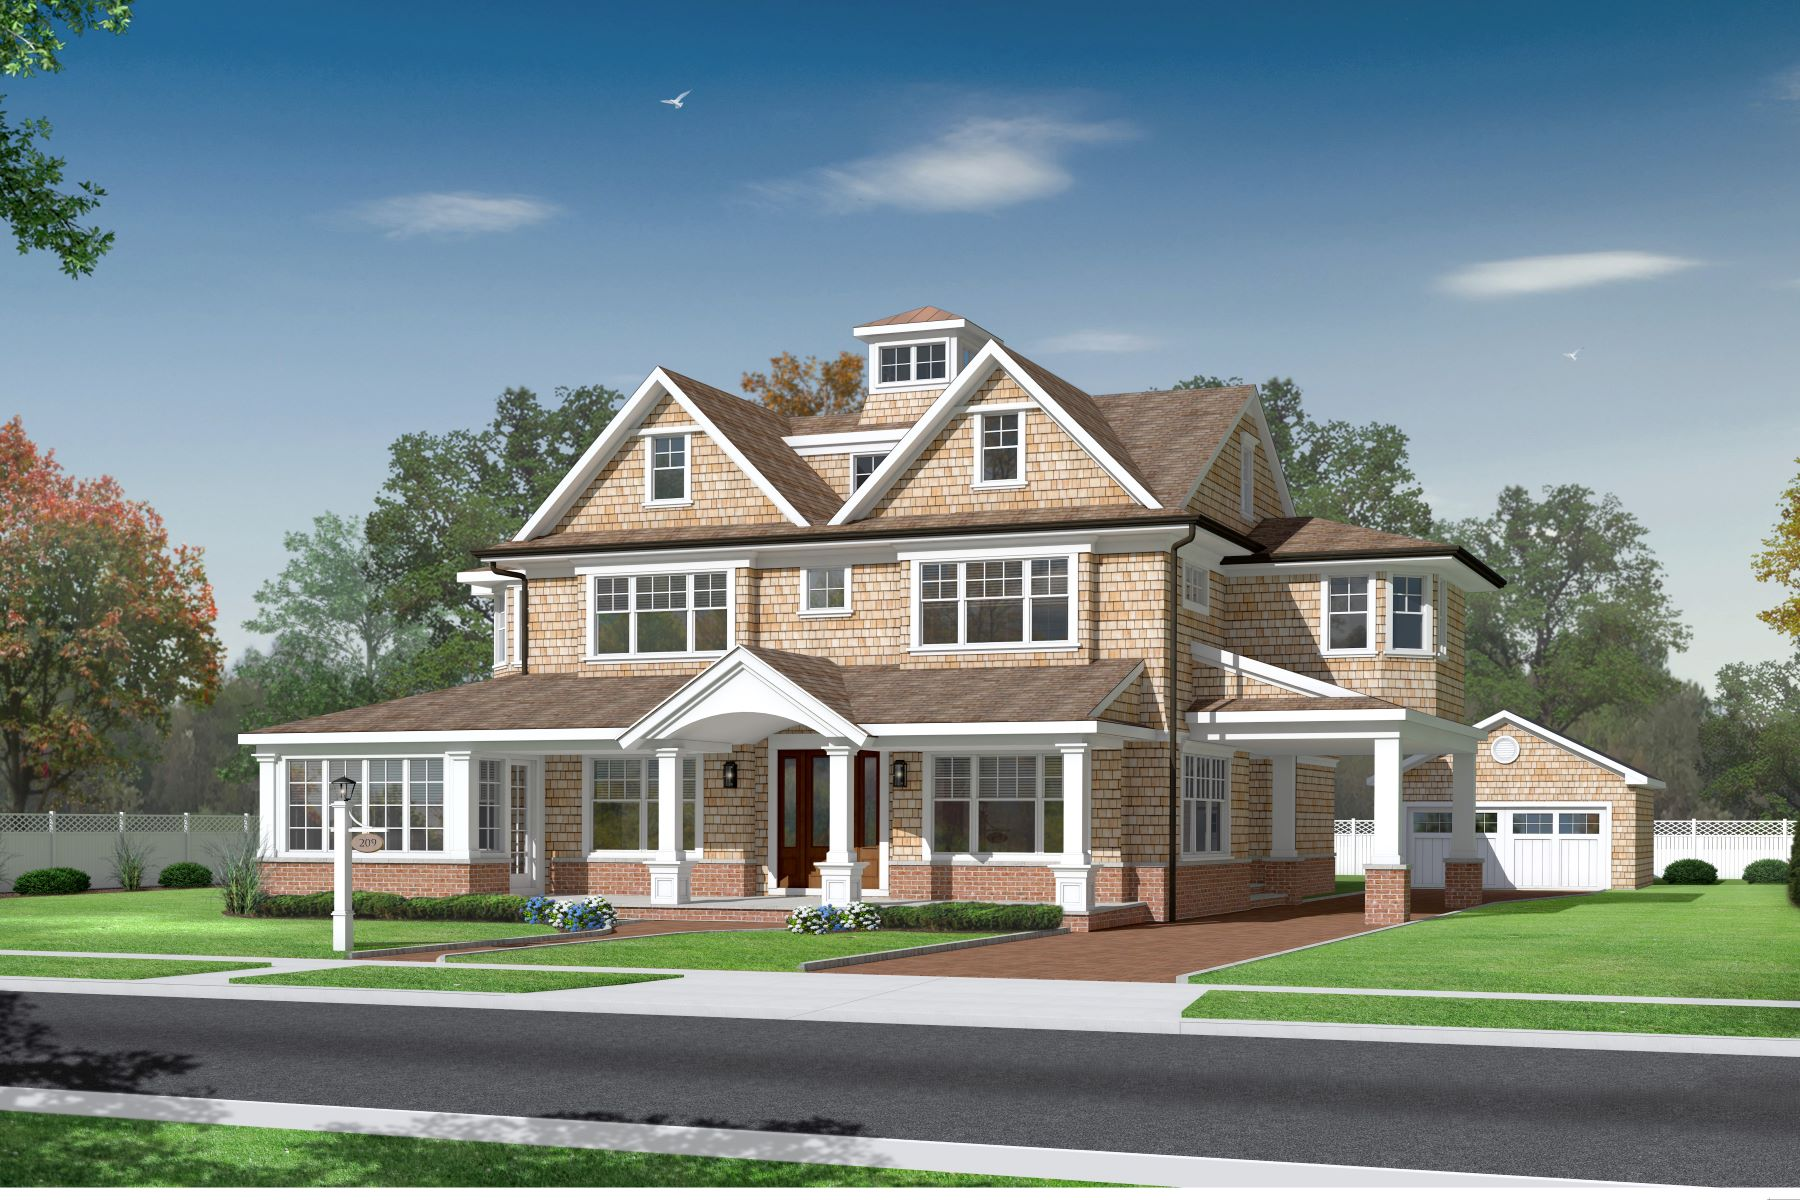 Single Family Homes for Sale at Spring Lake New Construction 209 Jersey Avenue Spring Lake, New Jersey 07762 United States